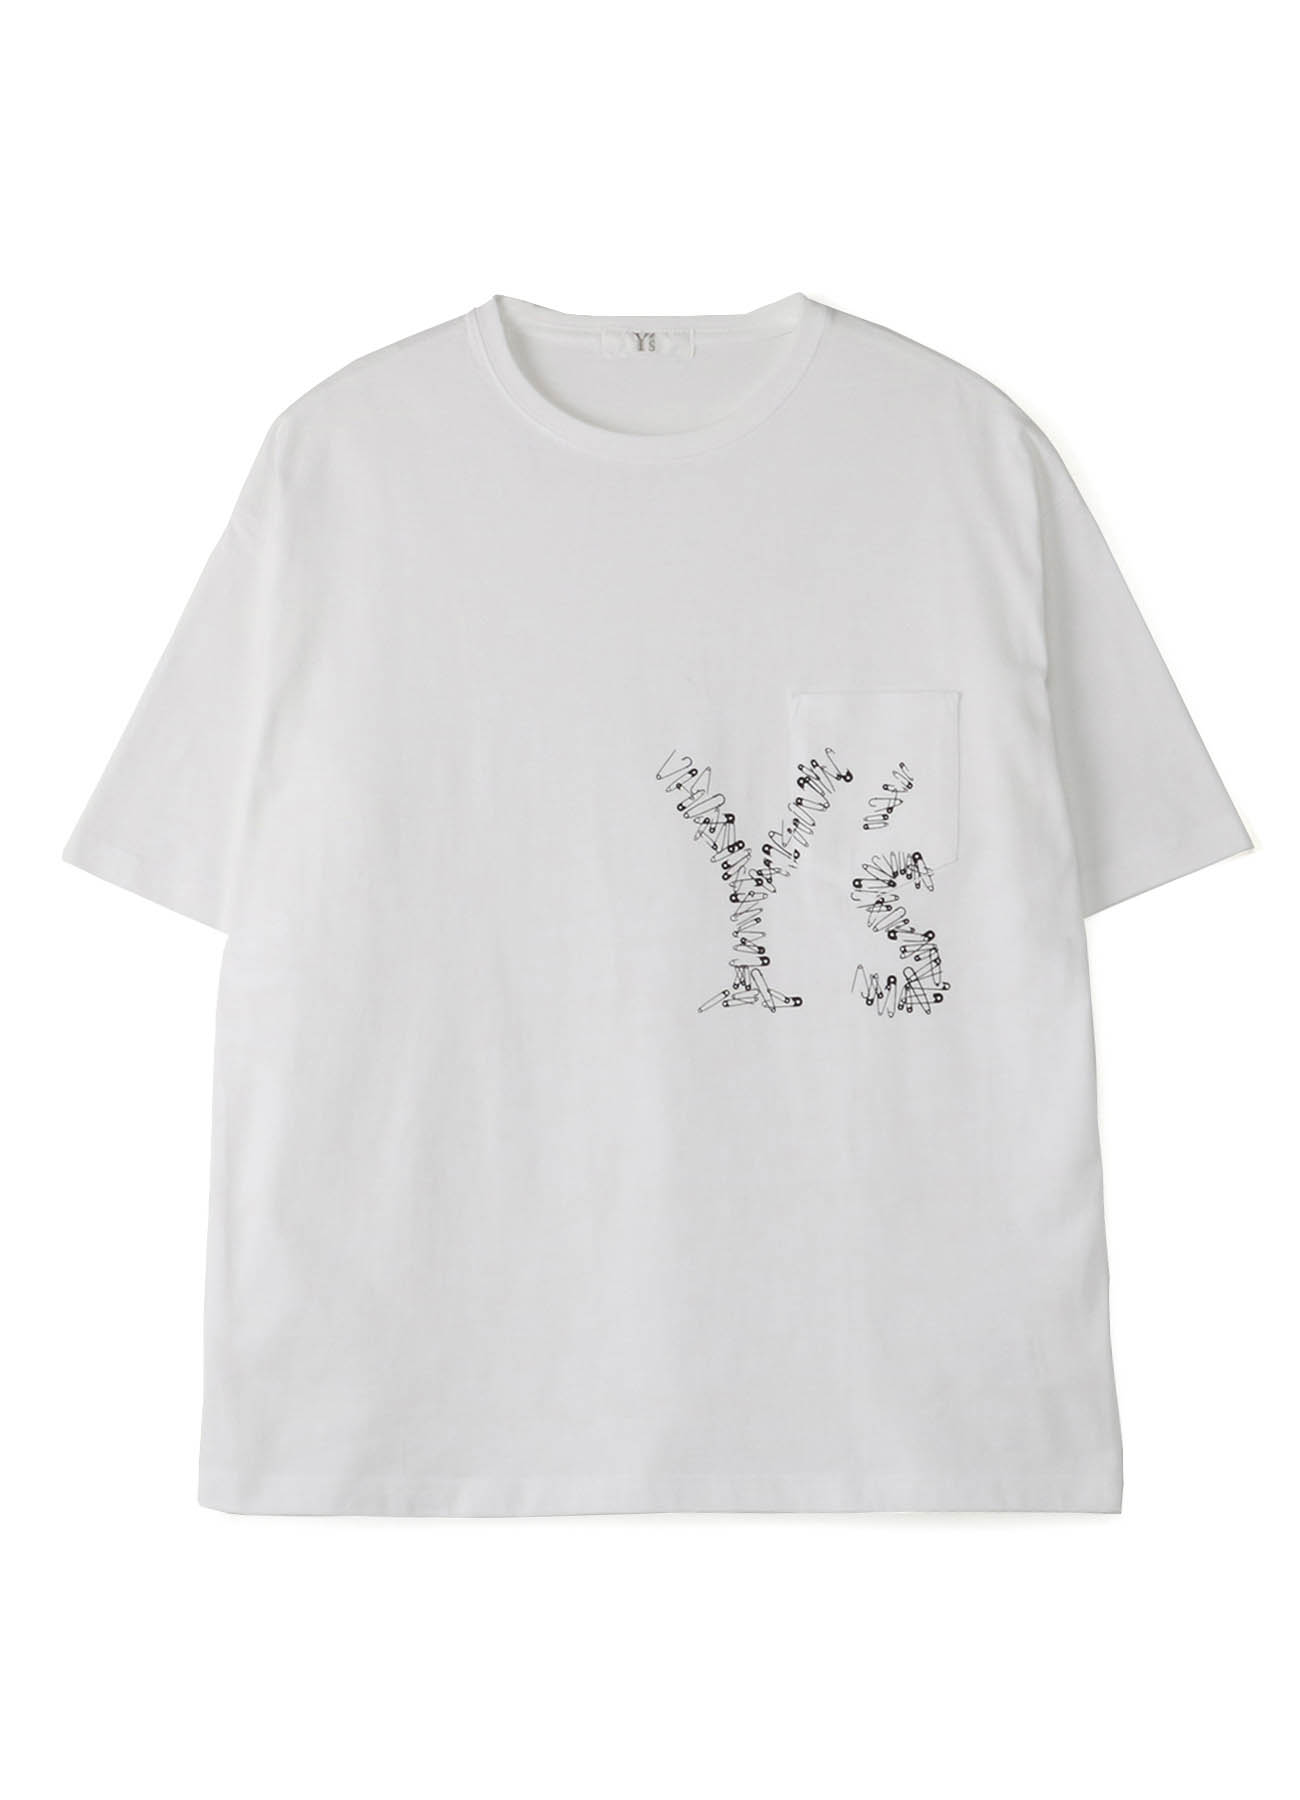 【Online Limited product】 Y's Pin T-shirt